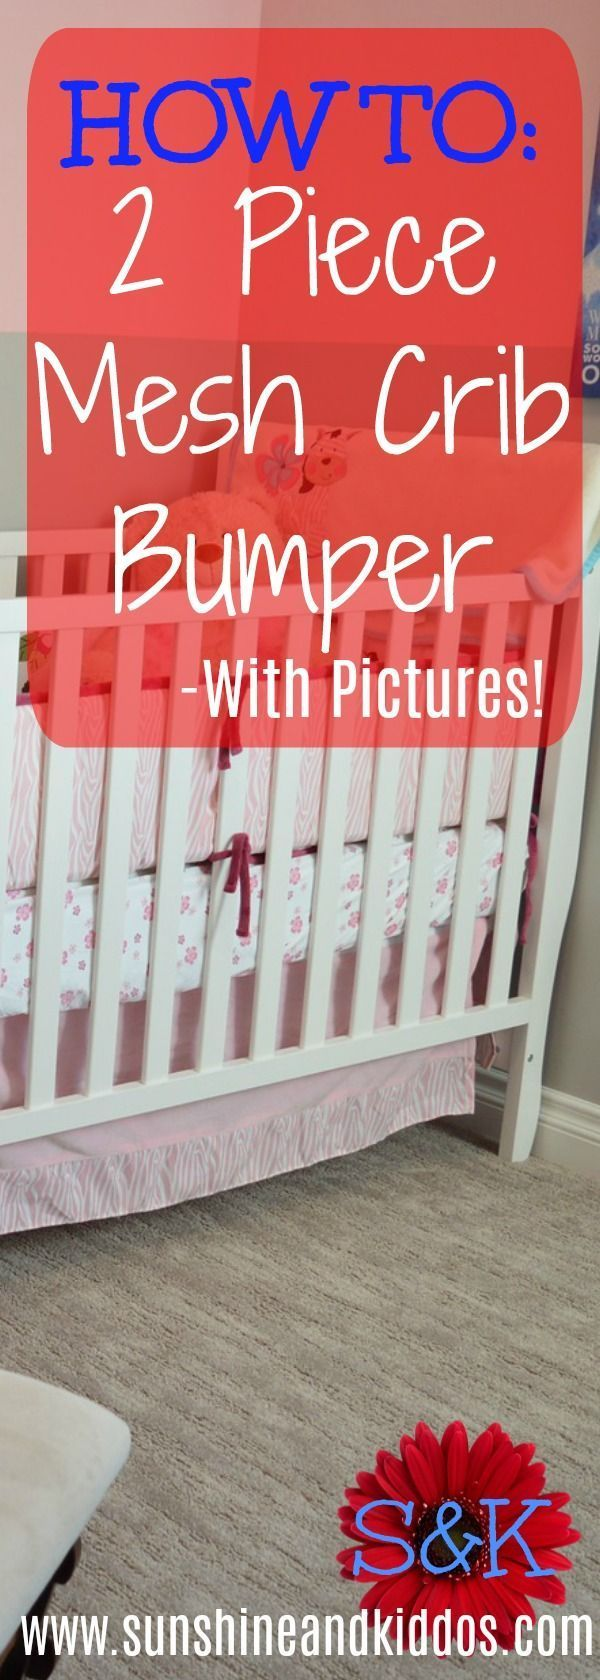 Breatheable Mesh Crib Bumper Simple How To Guide Mesh